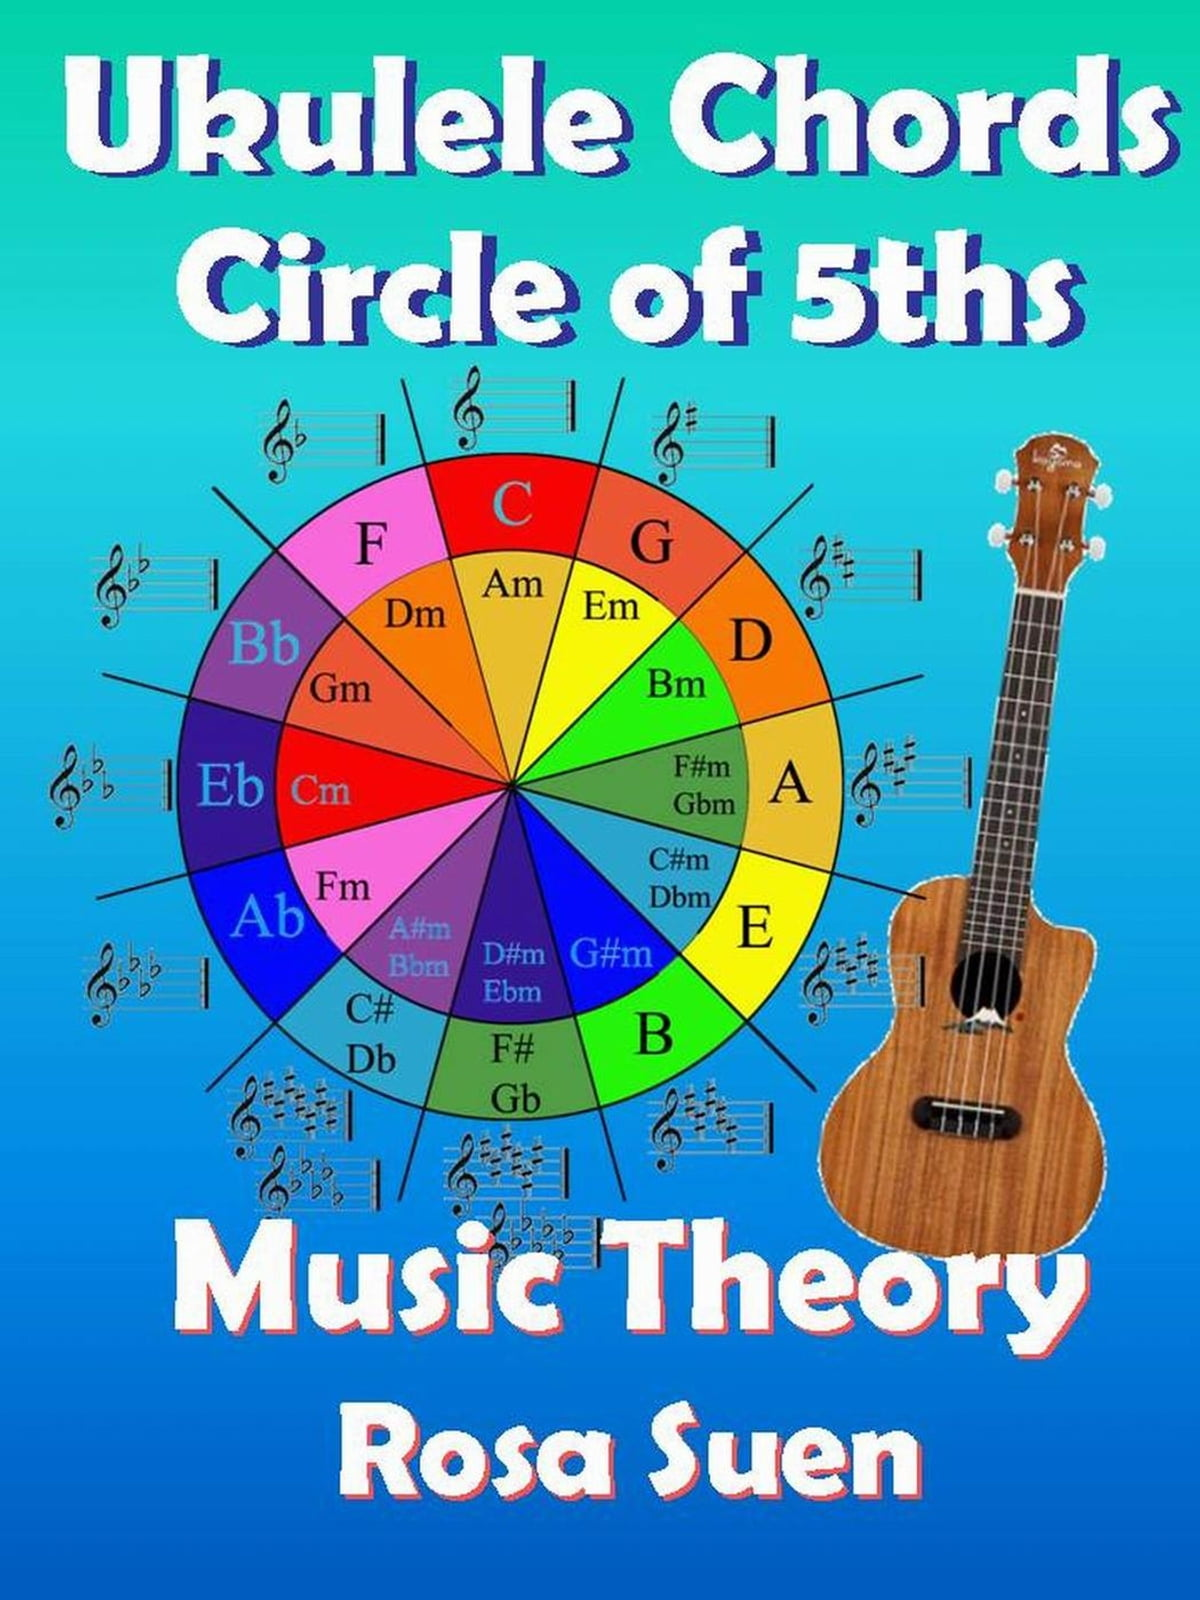 Music theory ukulele chord theory circle of fifths ebook by music theory ukulele chord theory circle of fifths ebook by rosa suen 9781501460791 rakuten kobo hexwebz Images